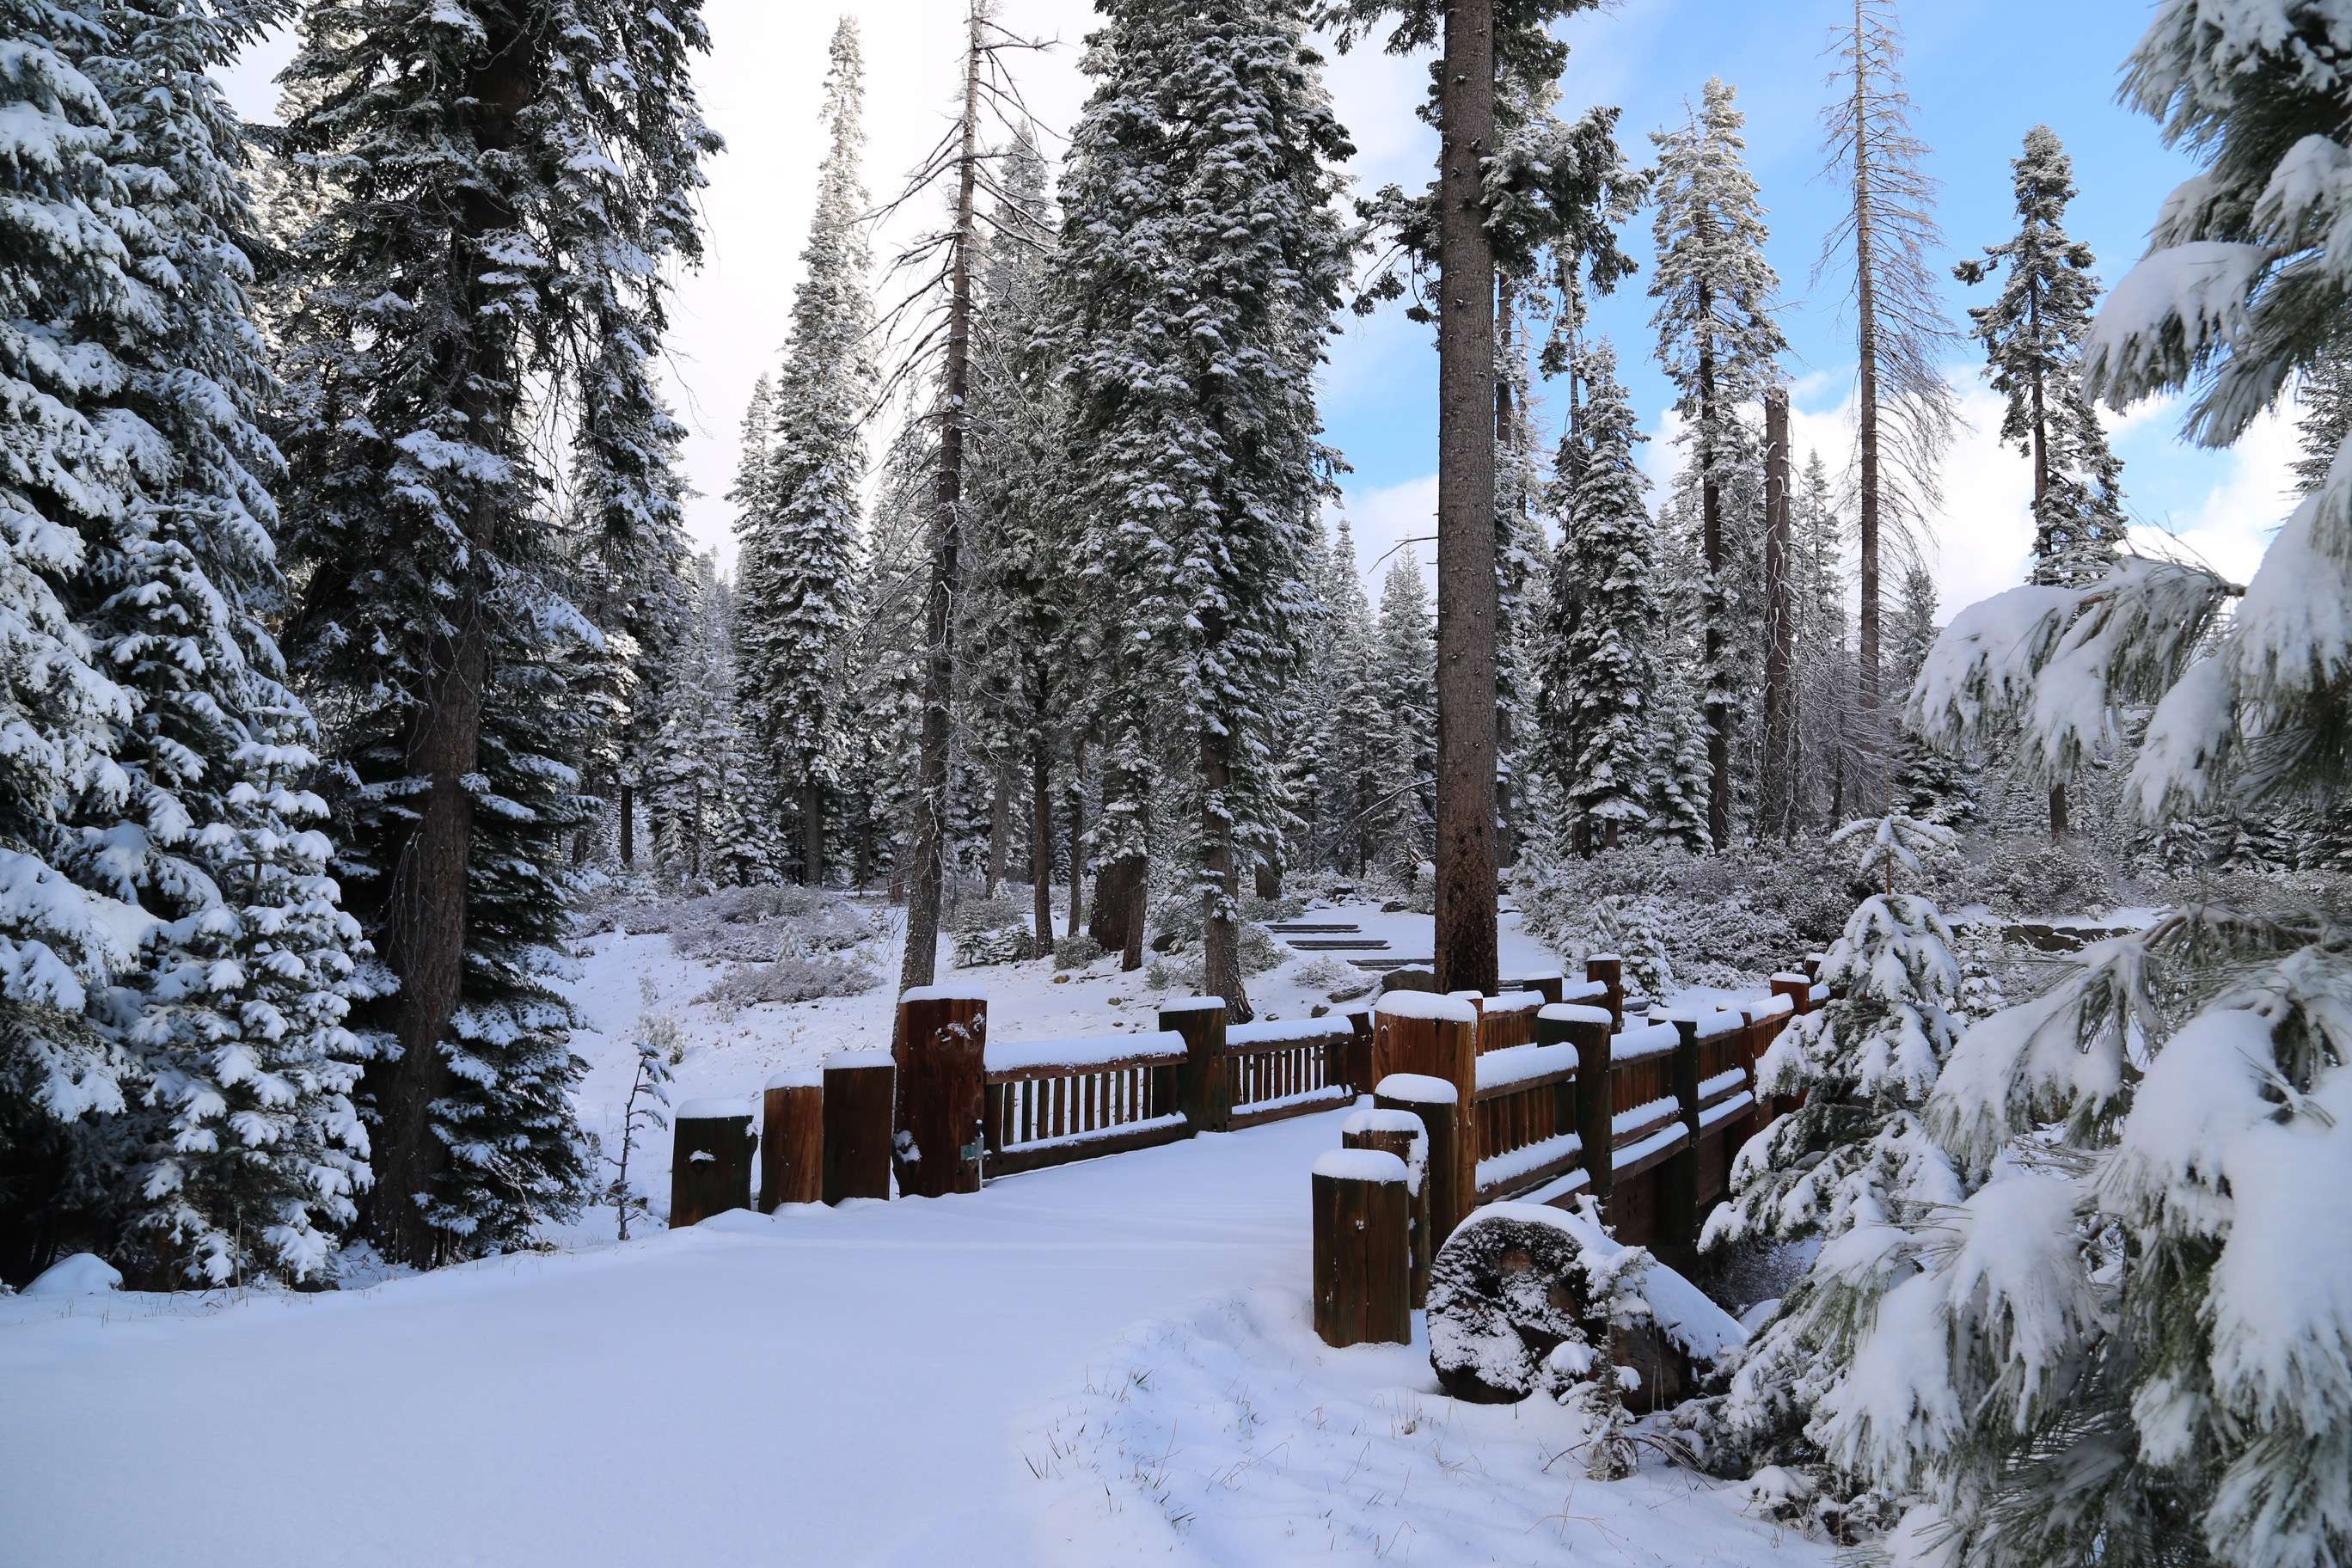 A late season snow in early May 2014 at Kings Canyon made for a magical early morning hike.